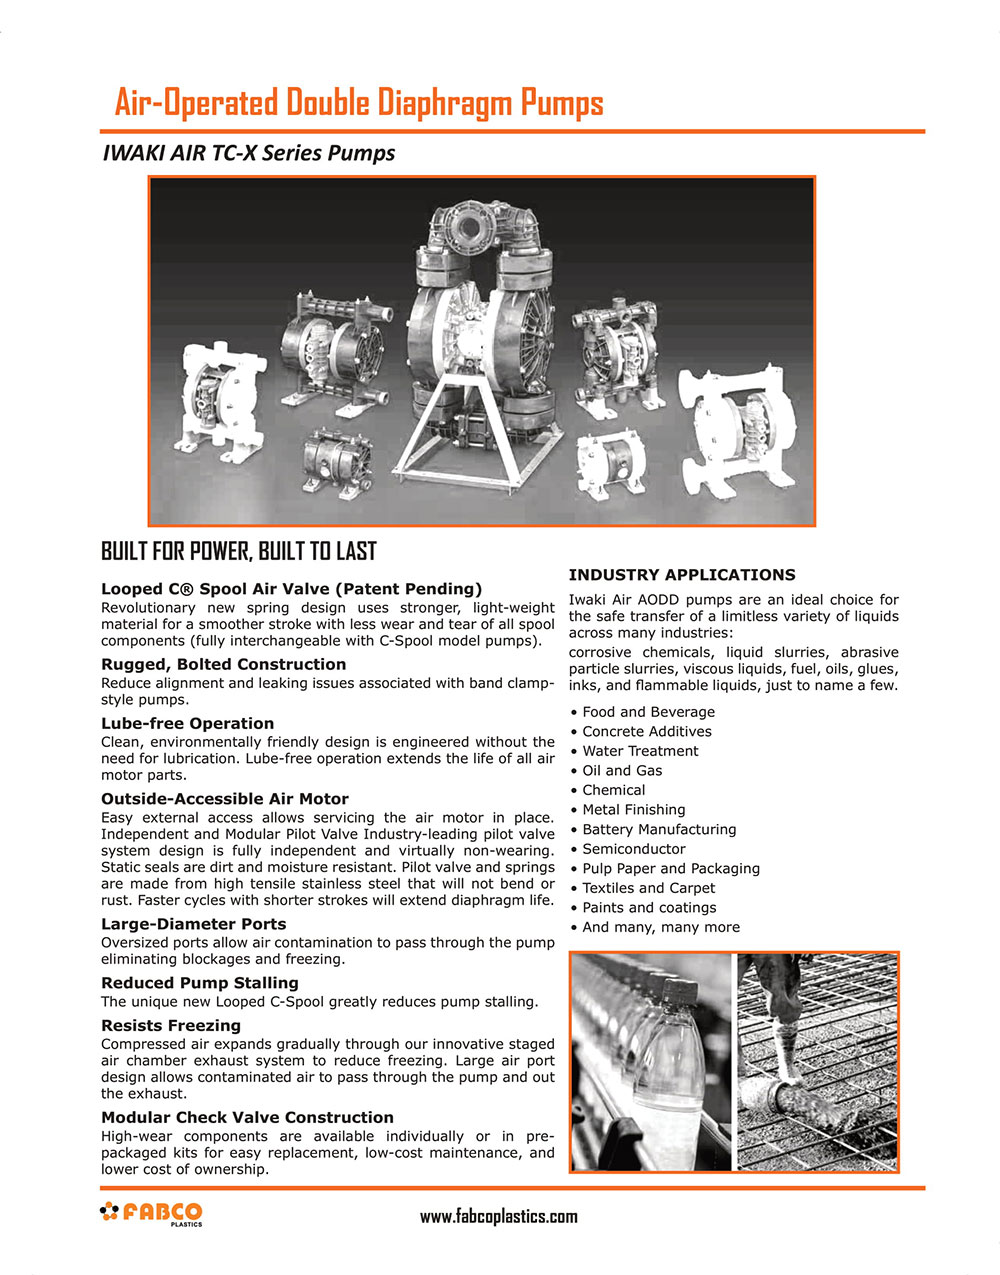 AODD - (Air-Operated Double Diaphragm Pumps)